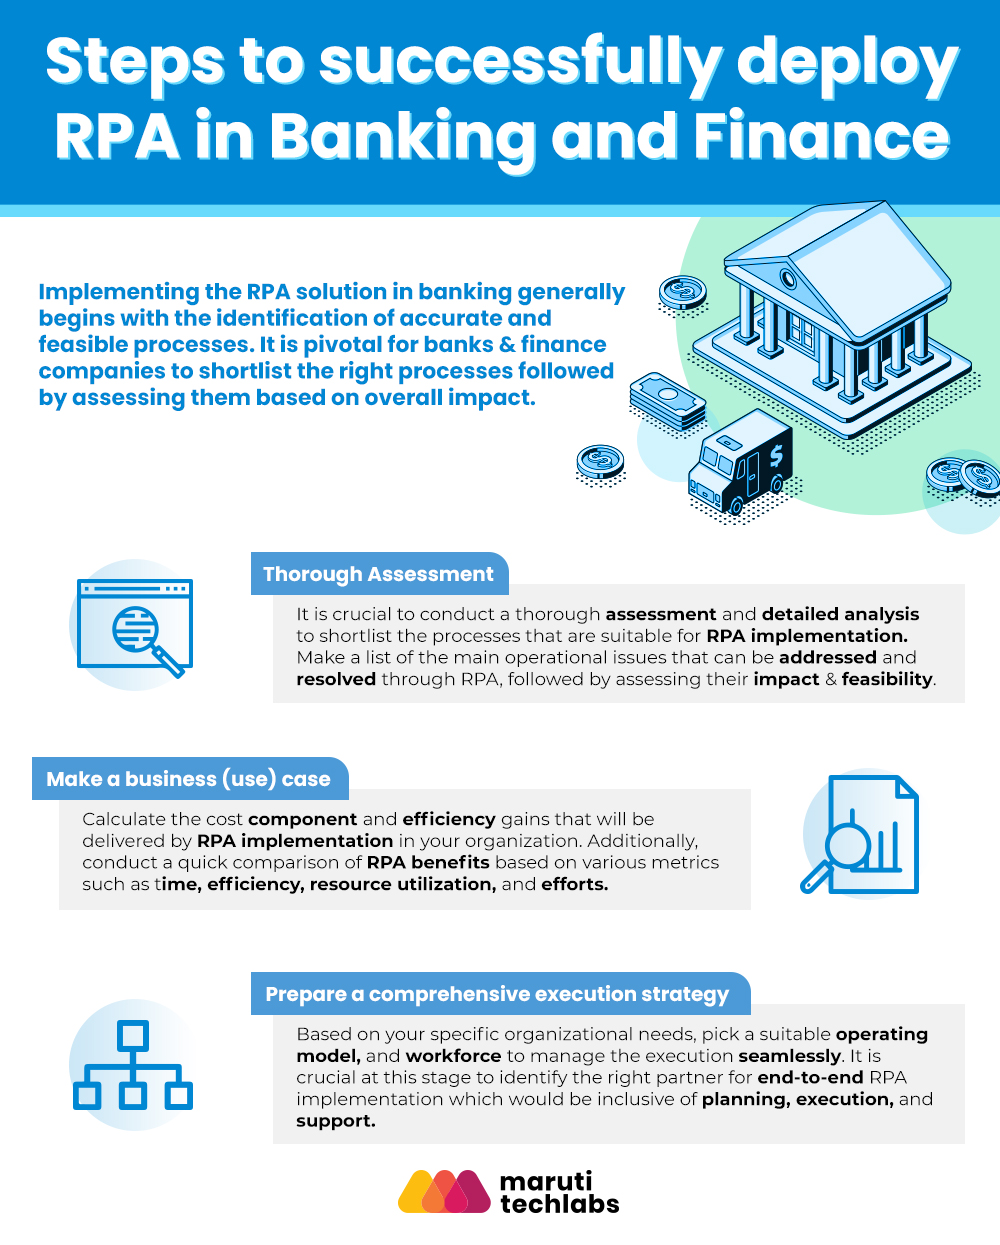 Deploy RPA in Banking and Finance